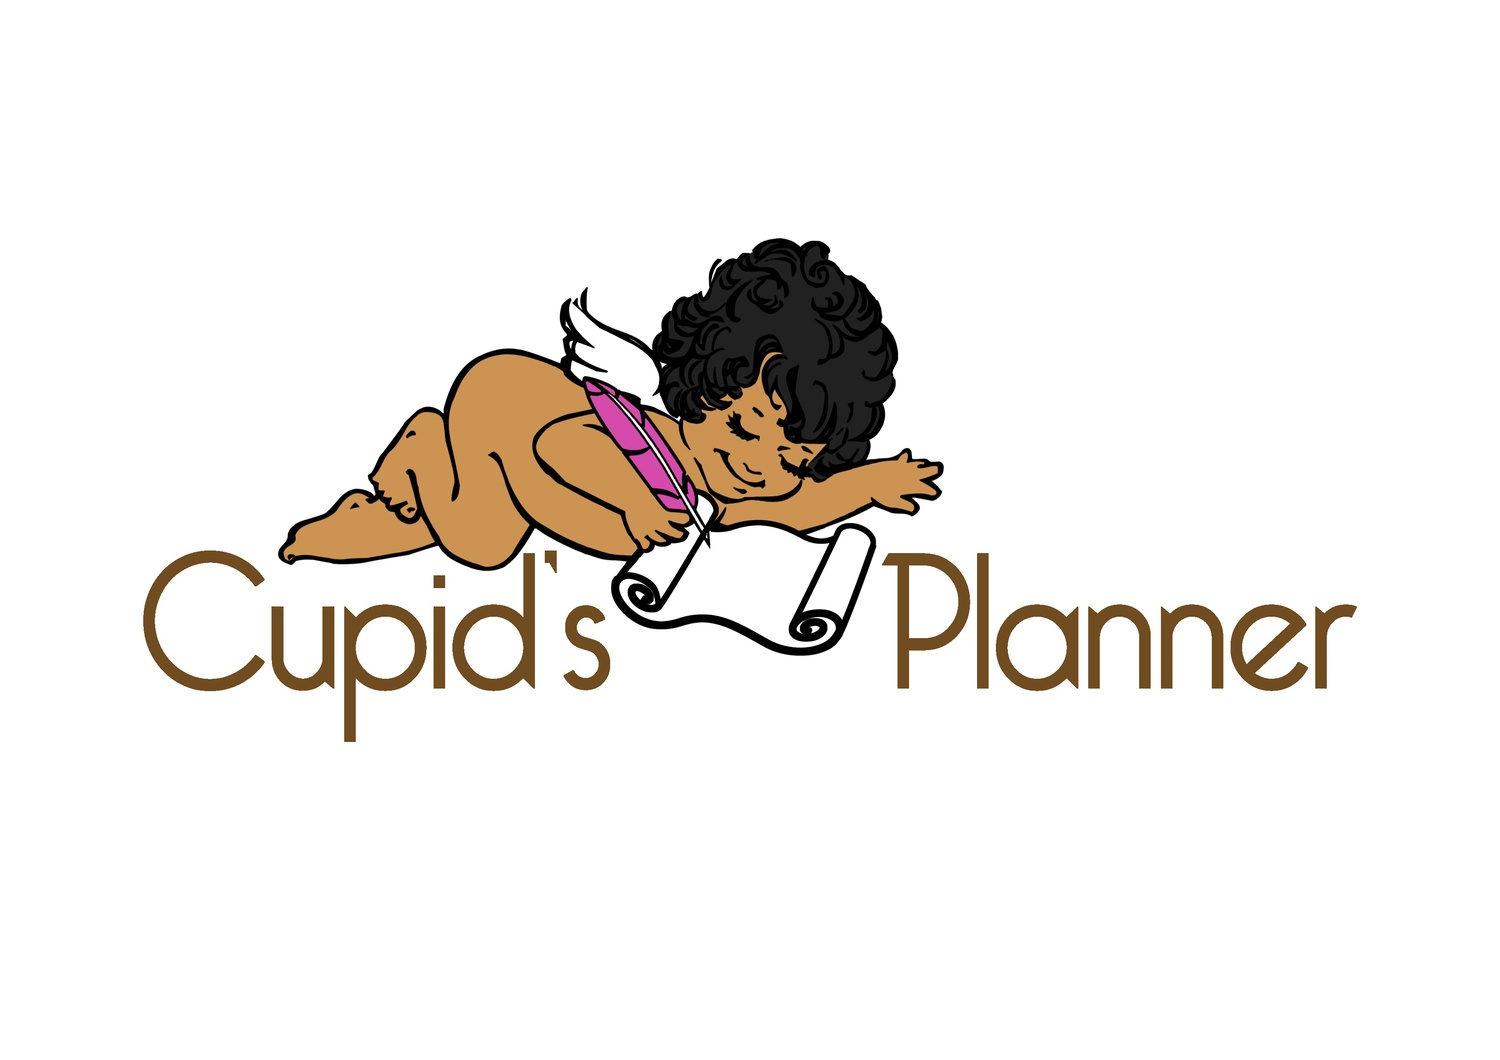 Cupid's Planner: Relationship and Intimacy Coaching